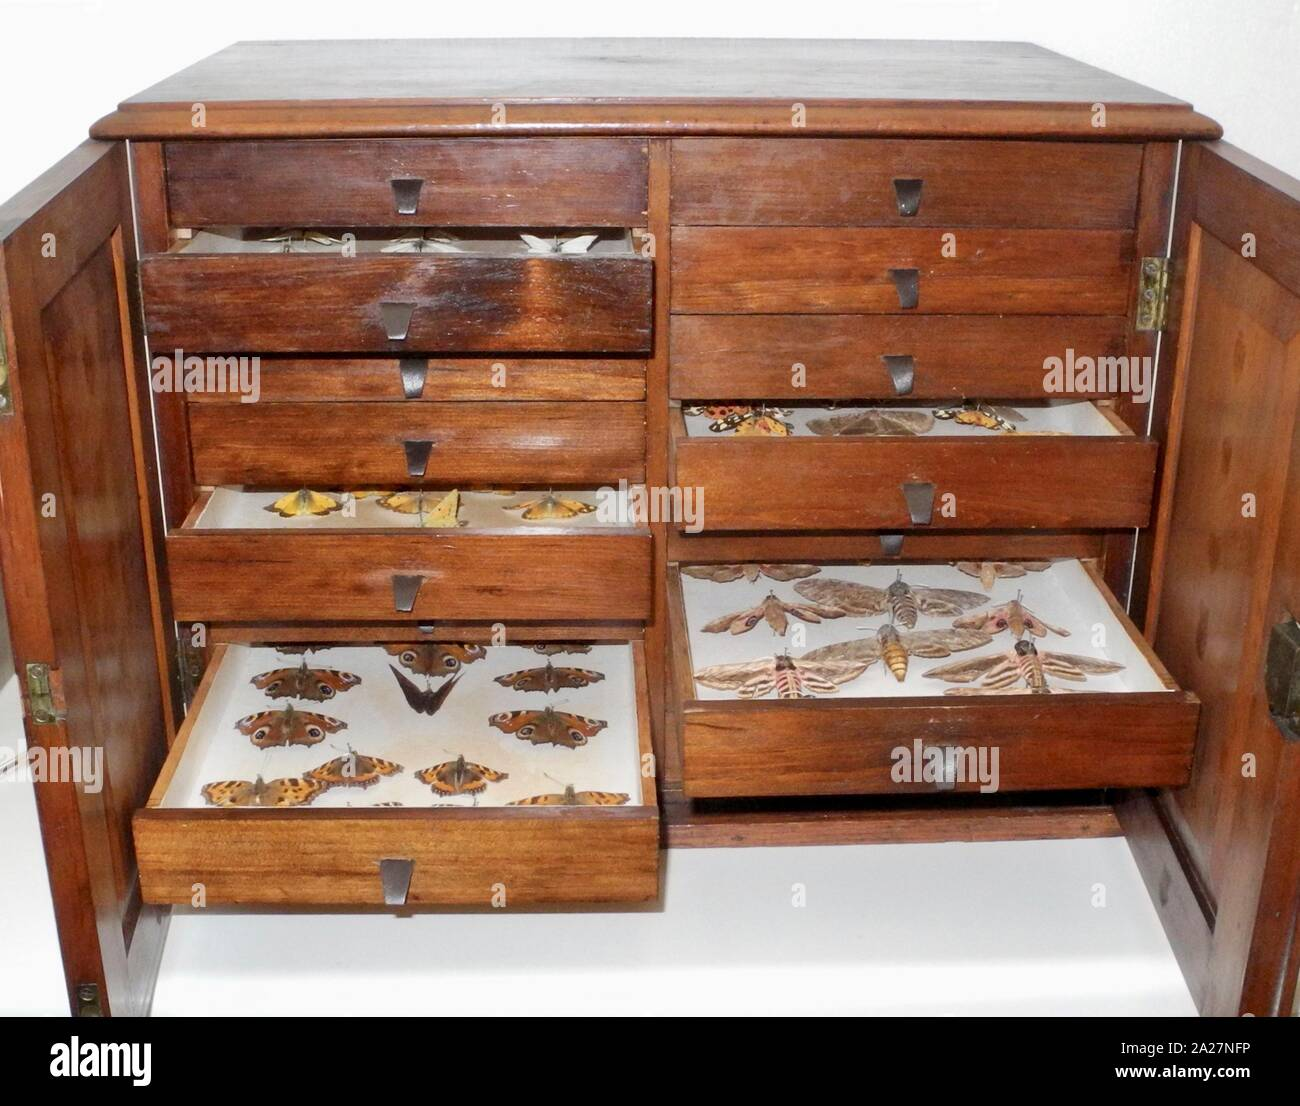 Butterfly collector's cabinet. A popular pastime particularly for gentlemen in the Victorian and Edwardian eras. Entomologists collected vast numbers of insects and pinned them into specially made cabinets. Continues today but is less politically correct as cameras can preserve all of the detail without destroying the subject. Stock Photo